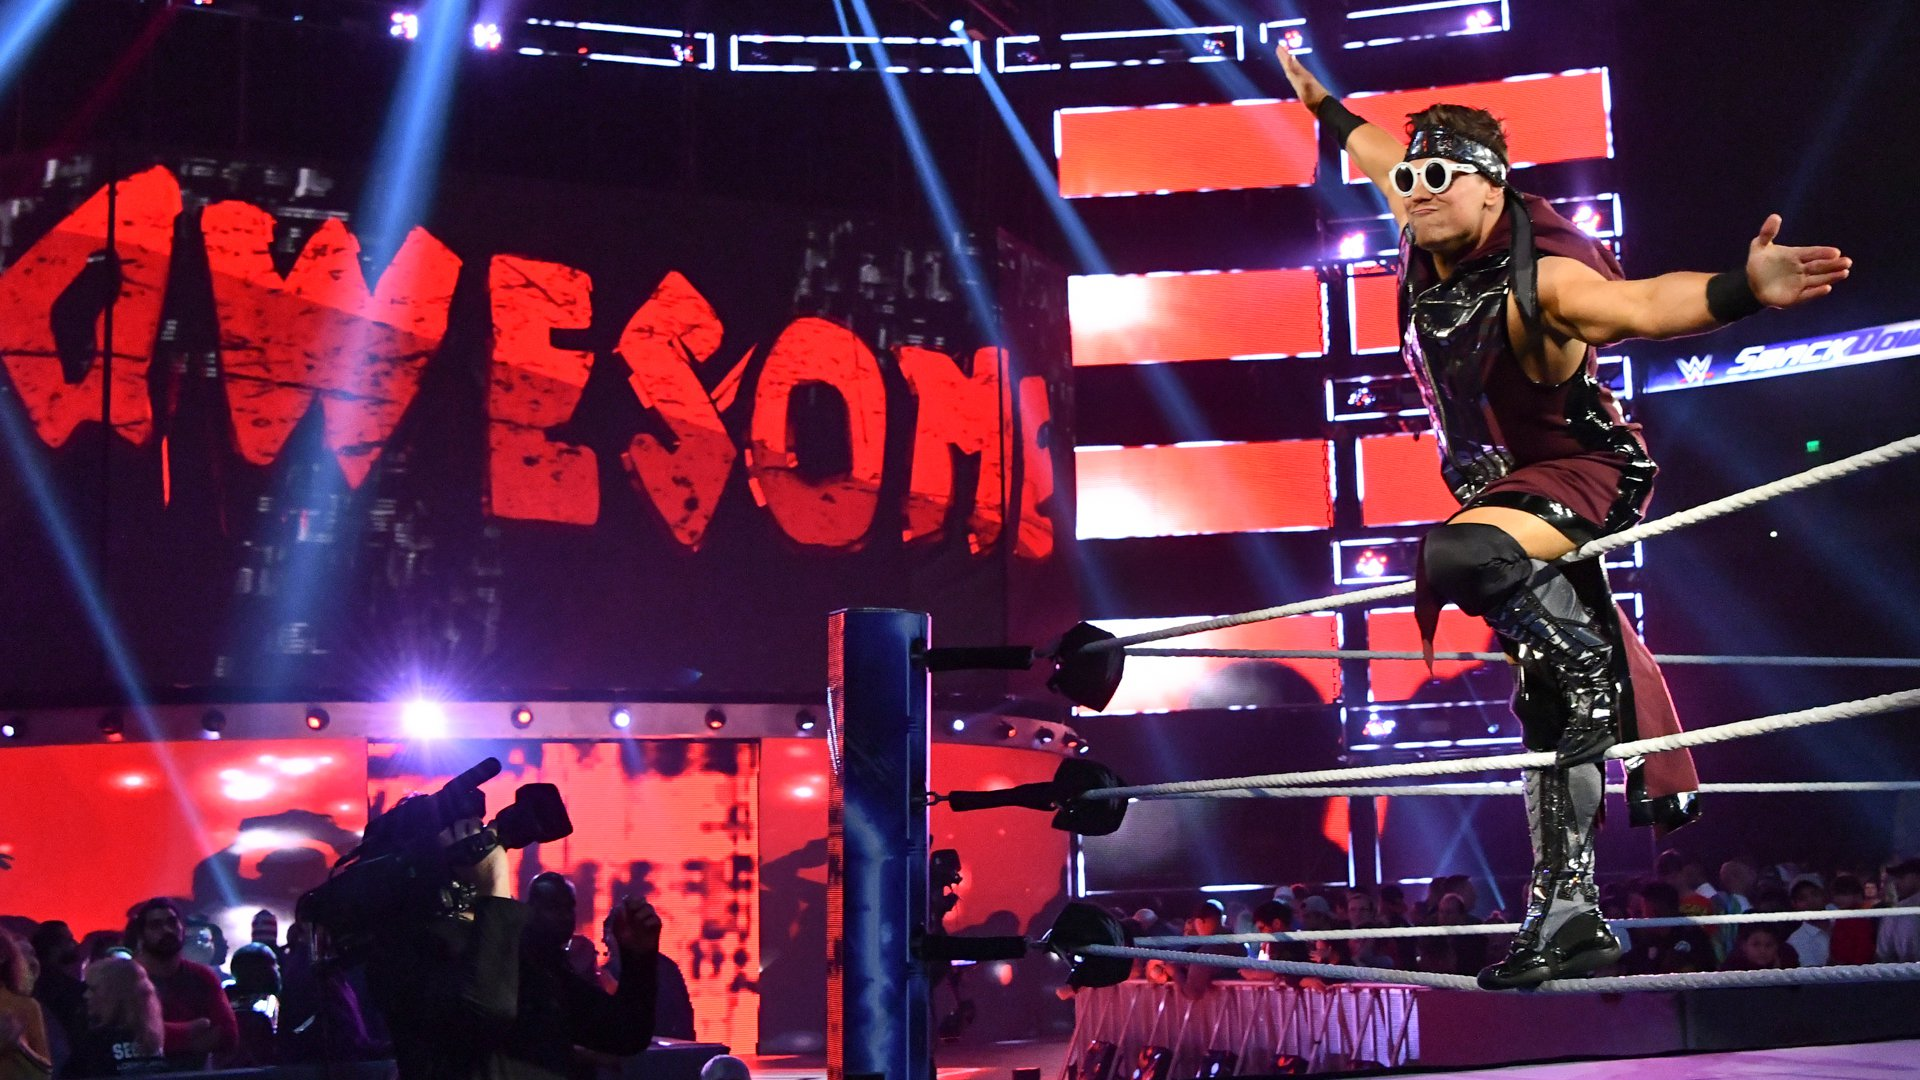 The Miz is ready for his main event match.